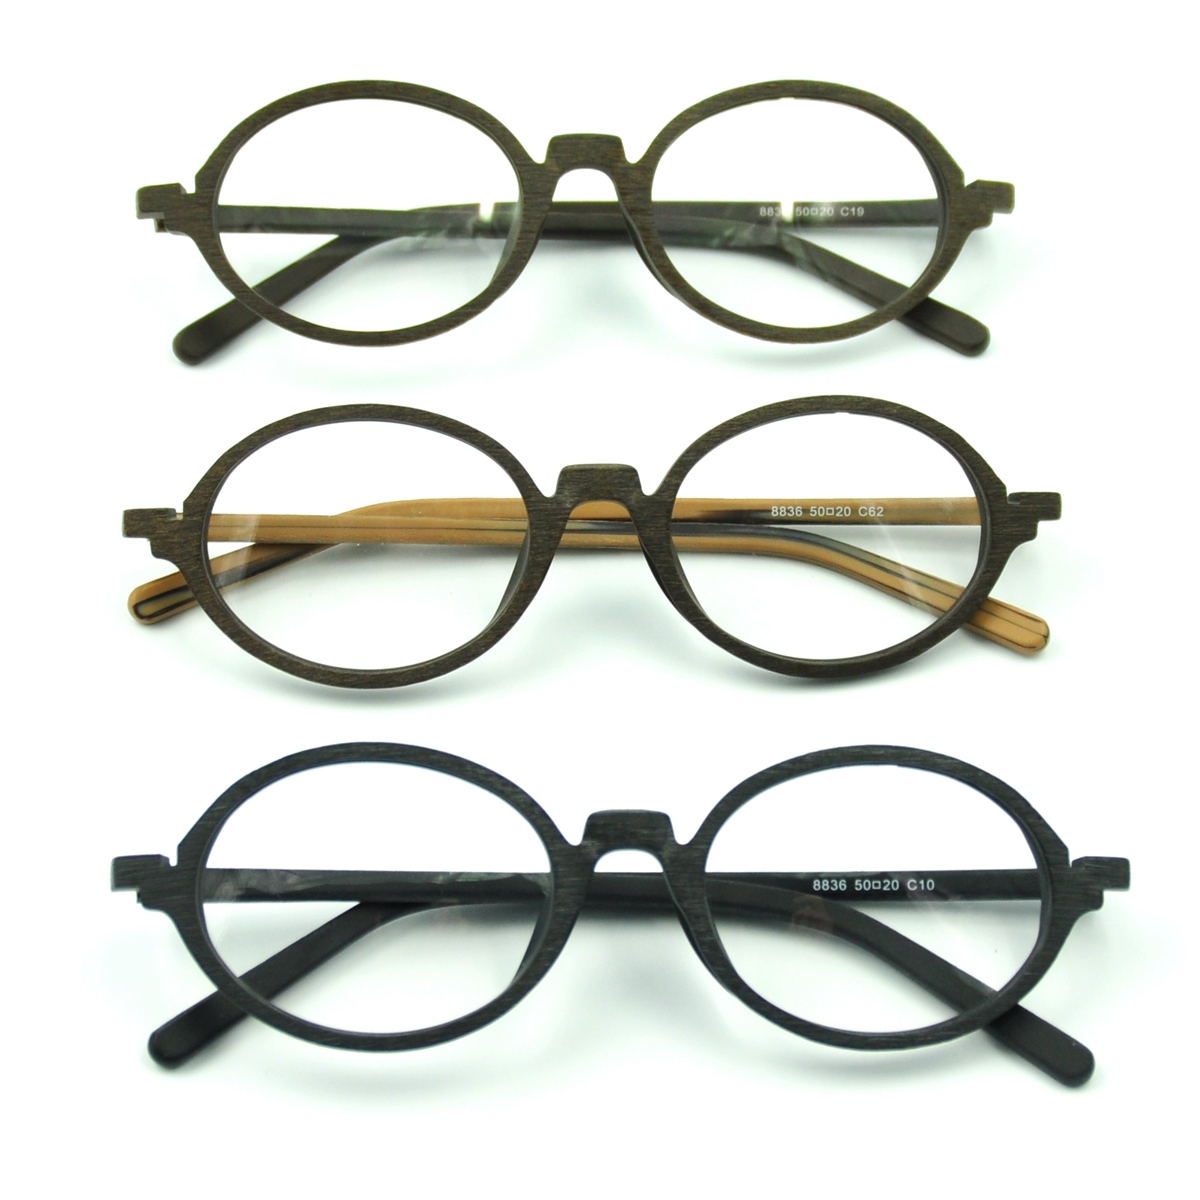 Vintage Antique Acetate Wood Oval Eyeglasses Frame RX Spectacles ...